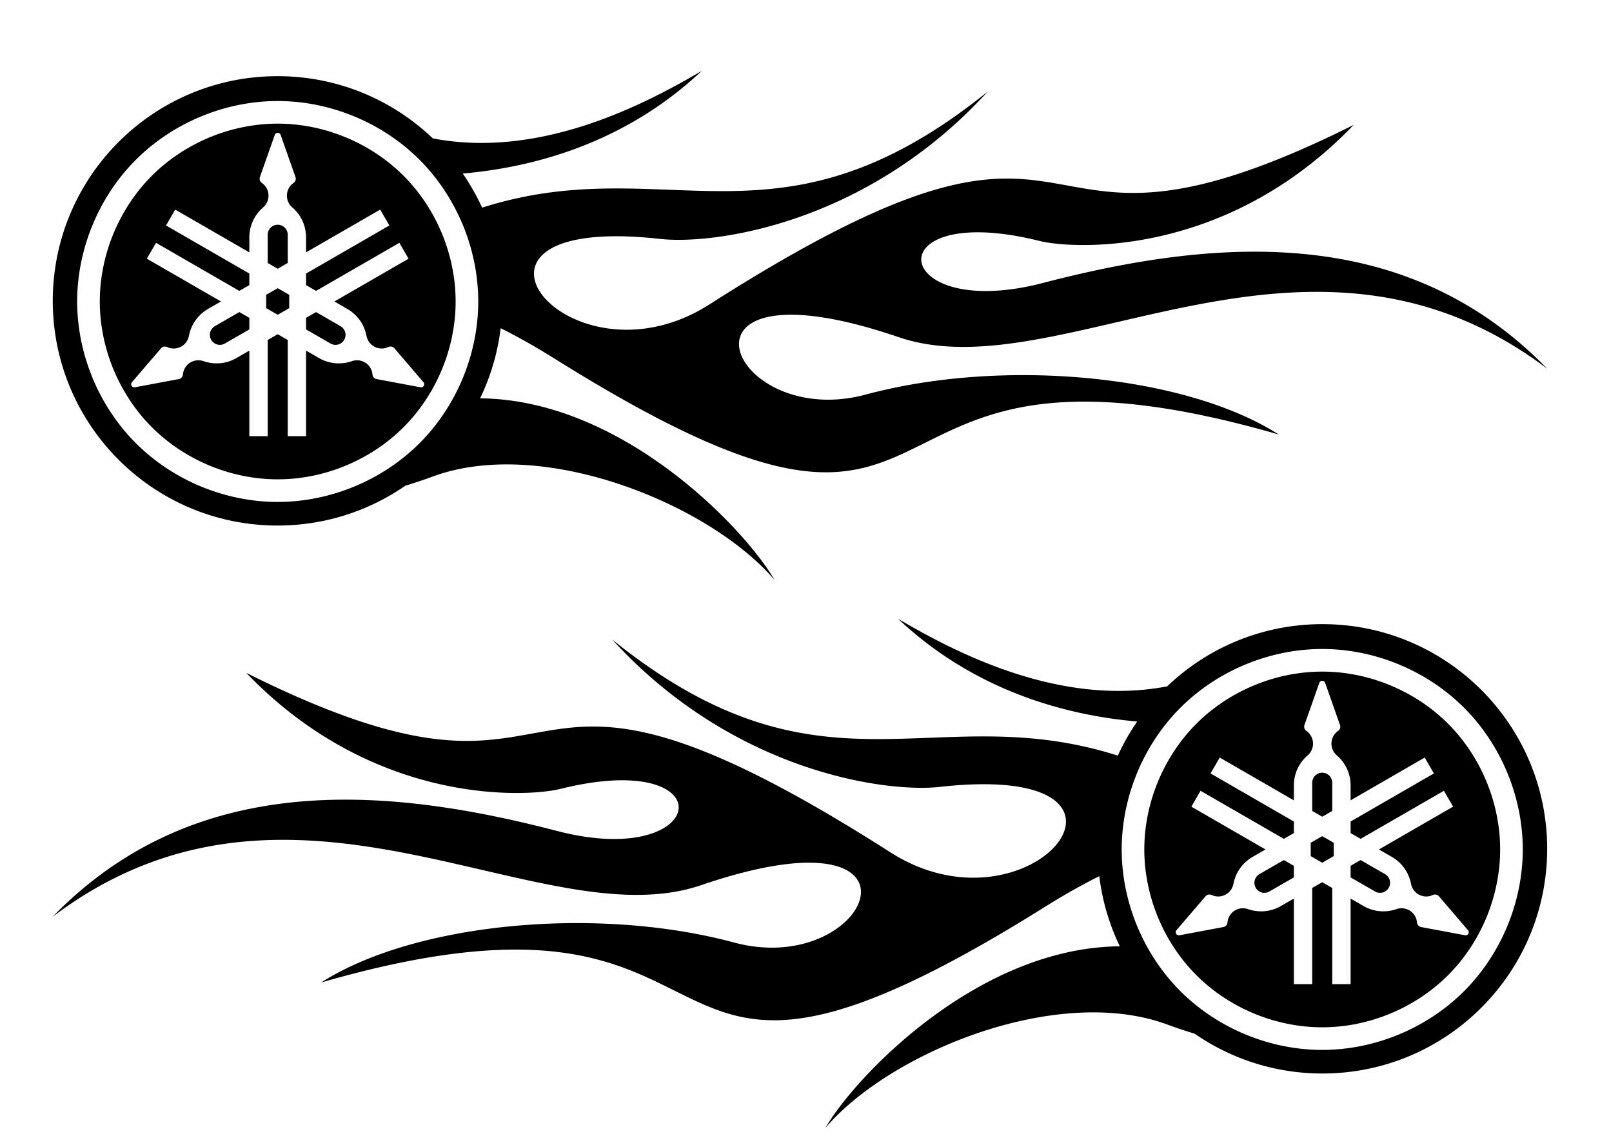 CANNONDALE  BICYCLE DECALS for $8.49   FREE SHIPPING//CHOOSE COLOR 2pcs